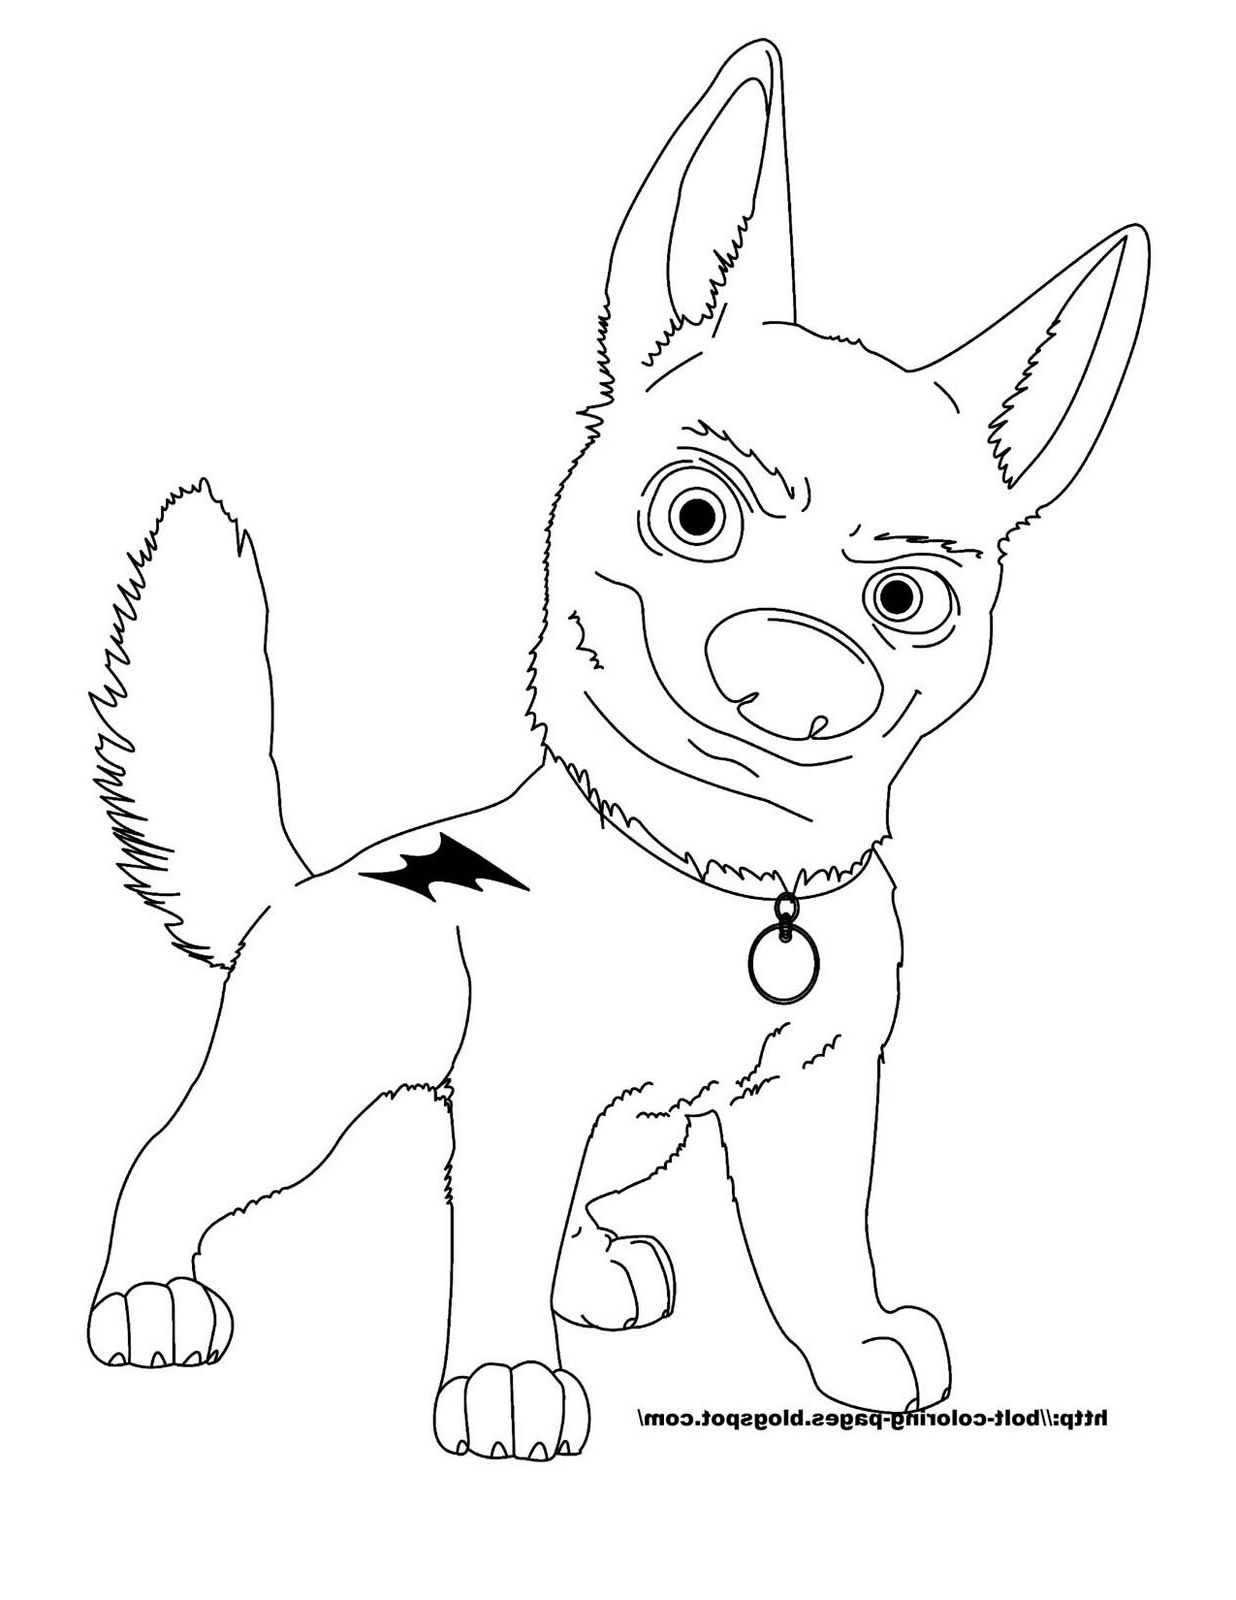 bolt coloring page disney characters coloring pages pinterest Surf's Up Wii bolt coloring page disney characters